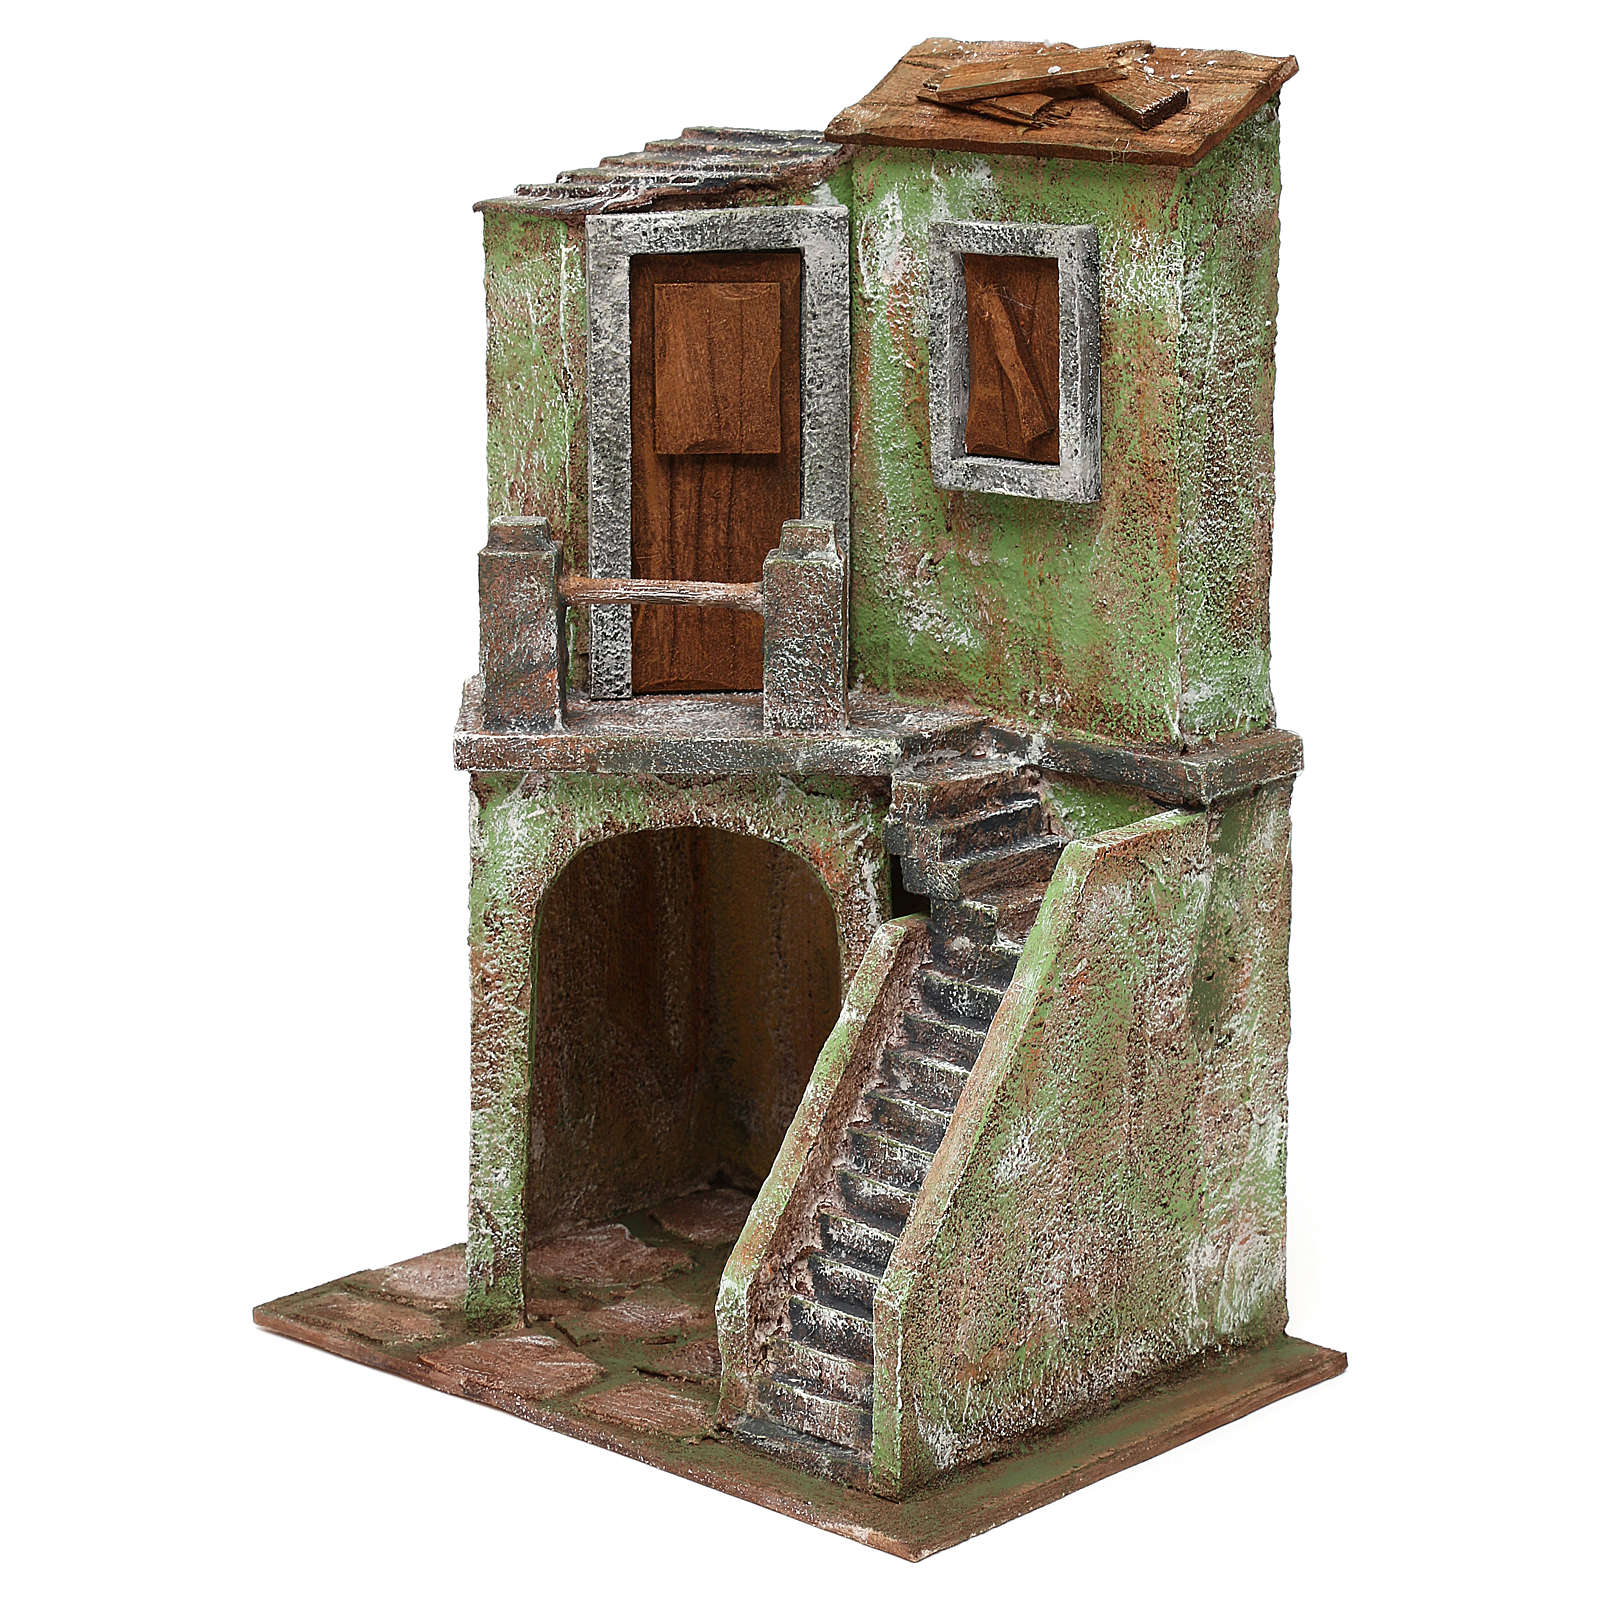 House with stairs and roofed area for 10 cm Nativity scene, 35x25x15 cm 4